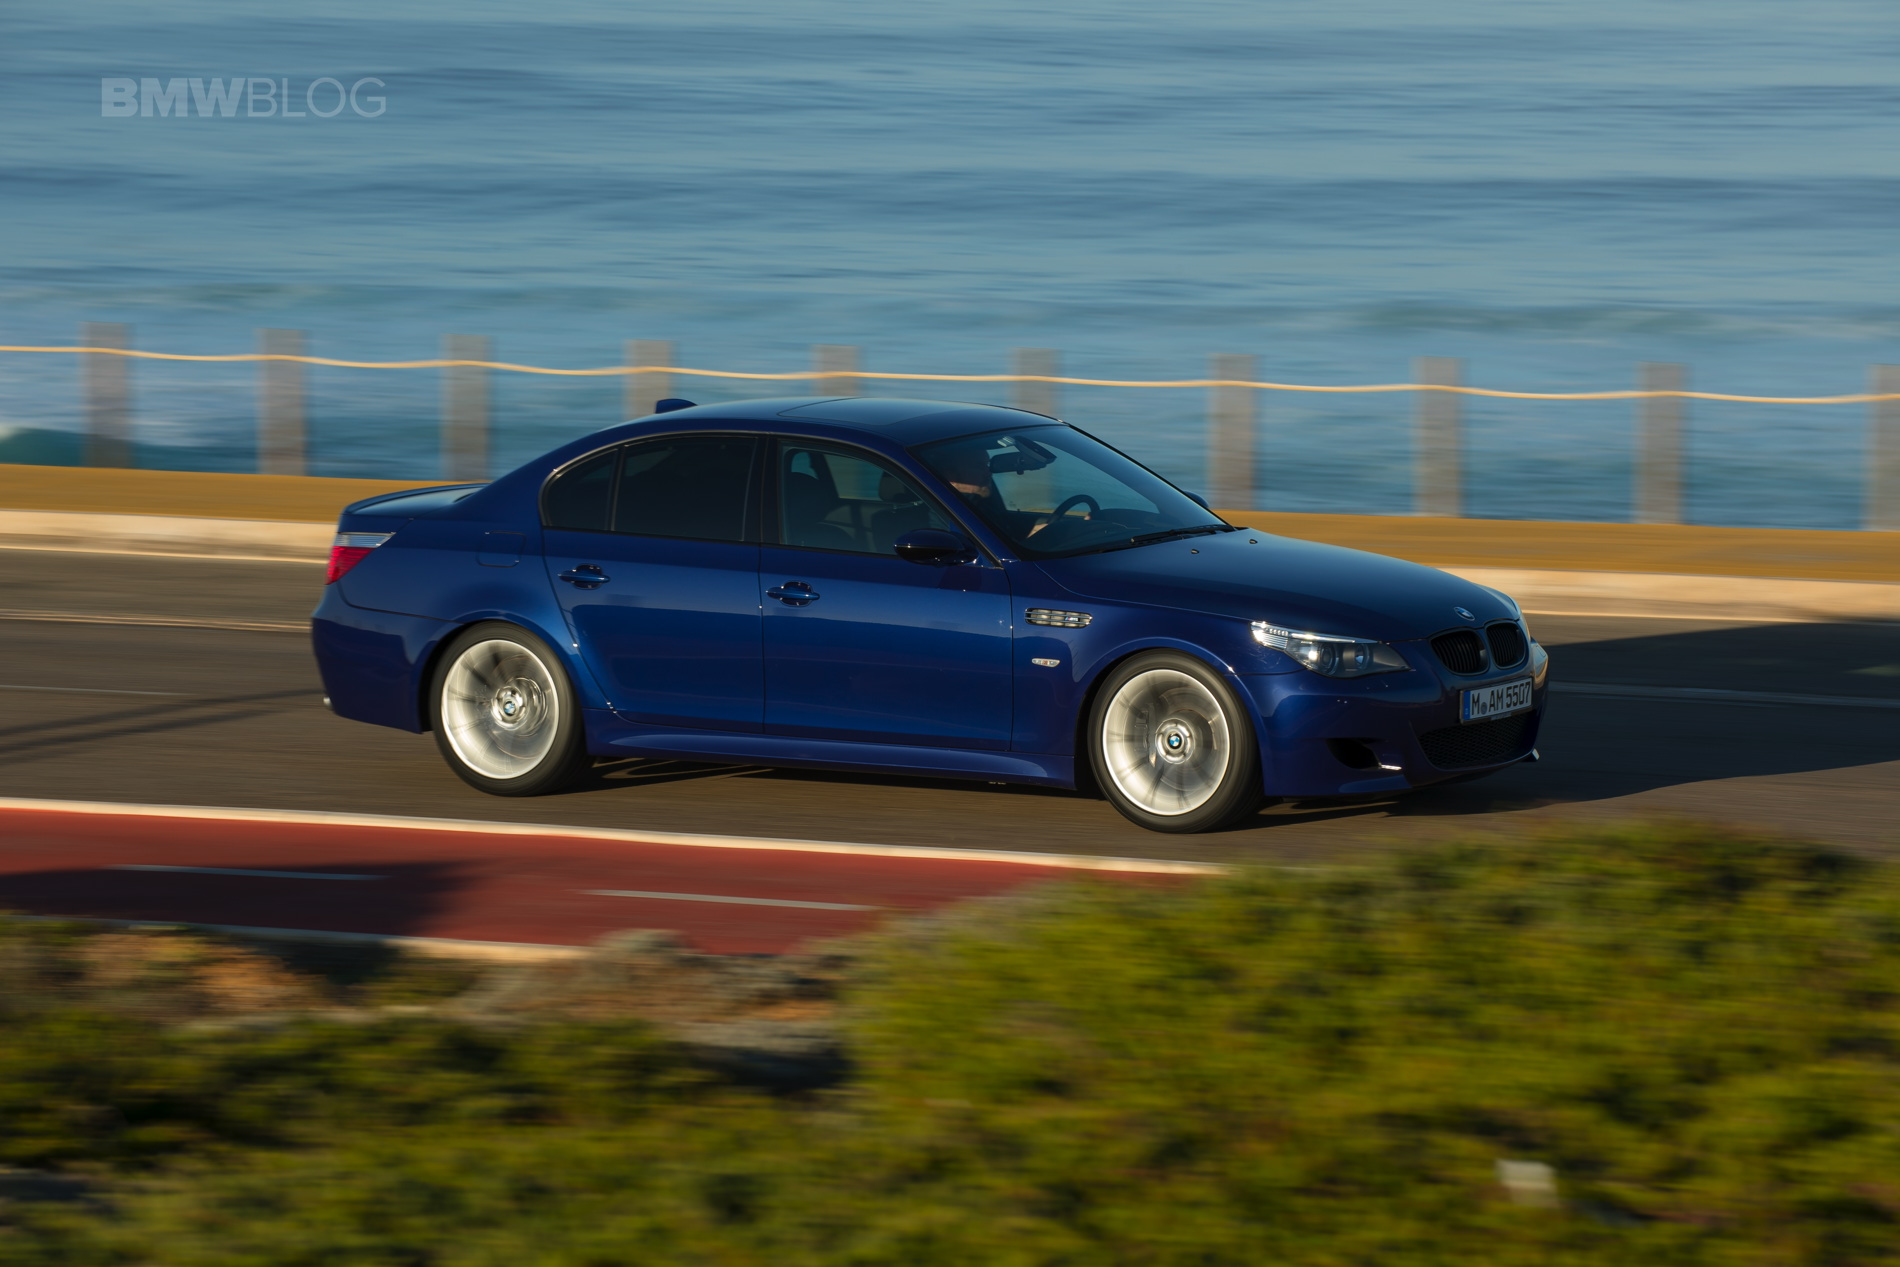 Bmw E60 M5 The Last Ultimate Sedan For The Professional